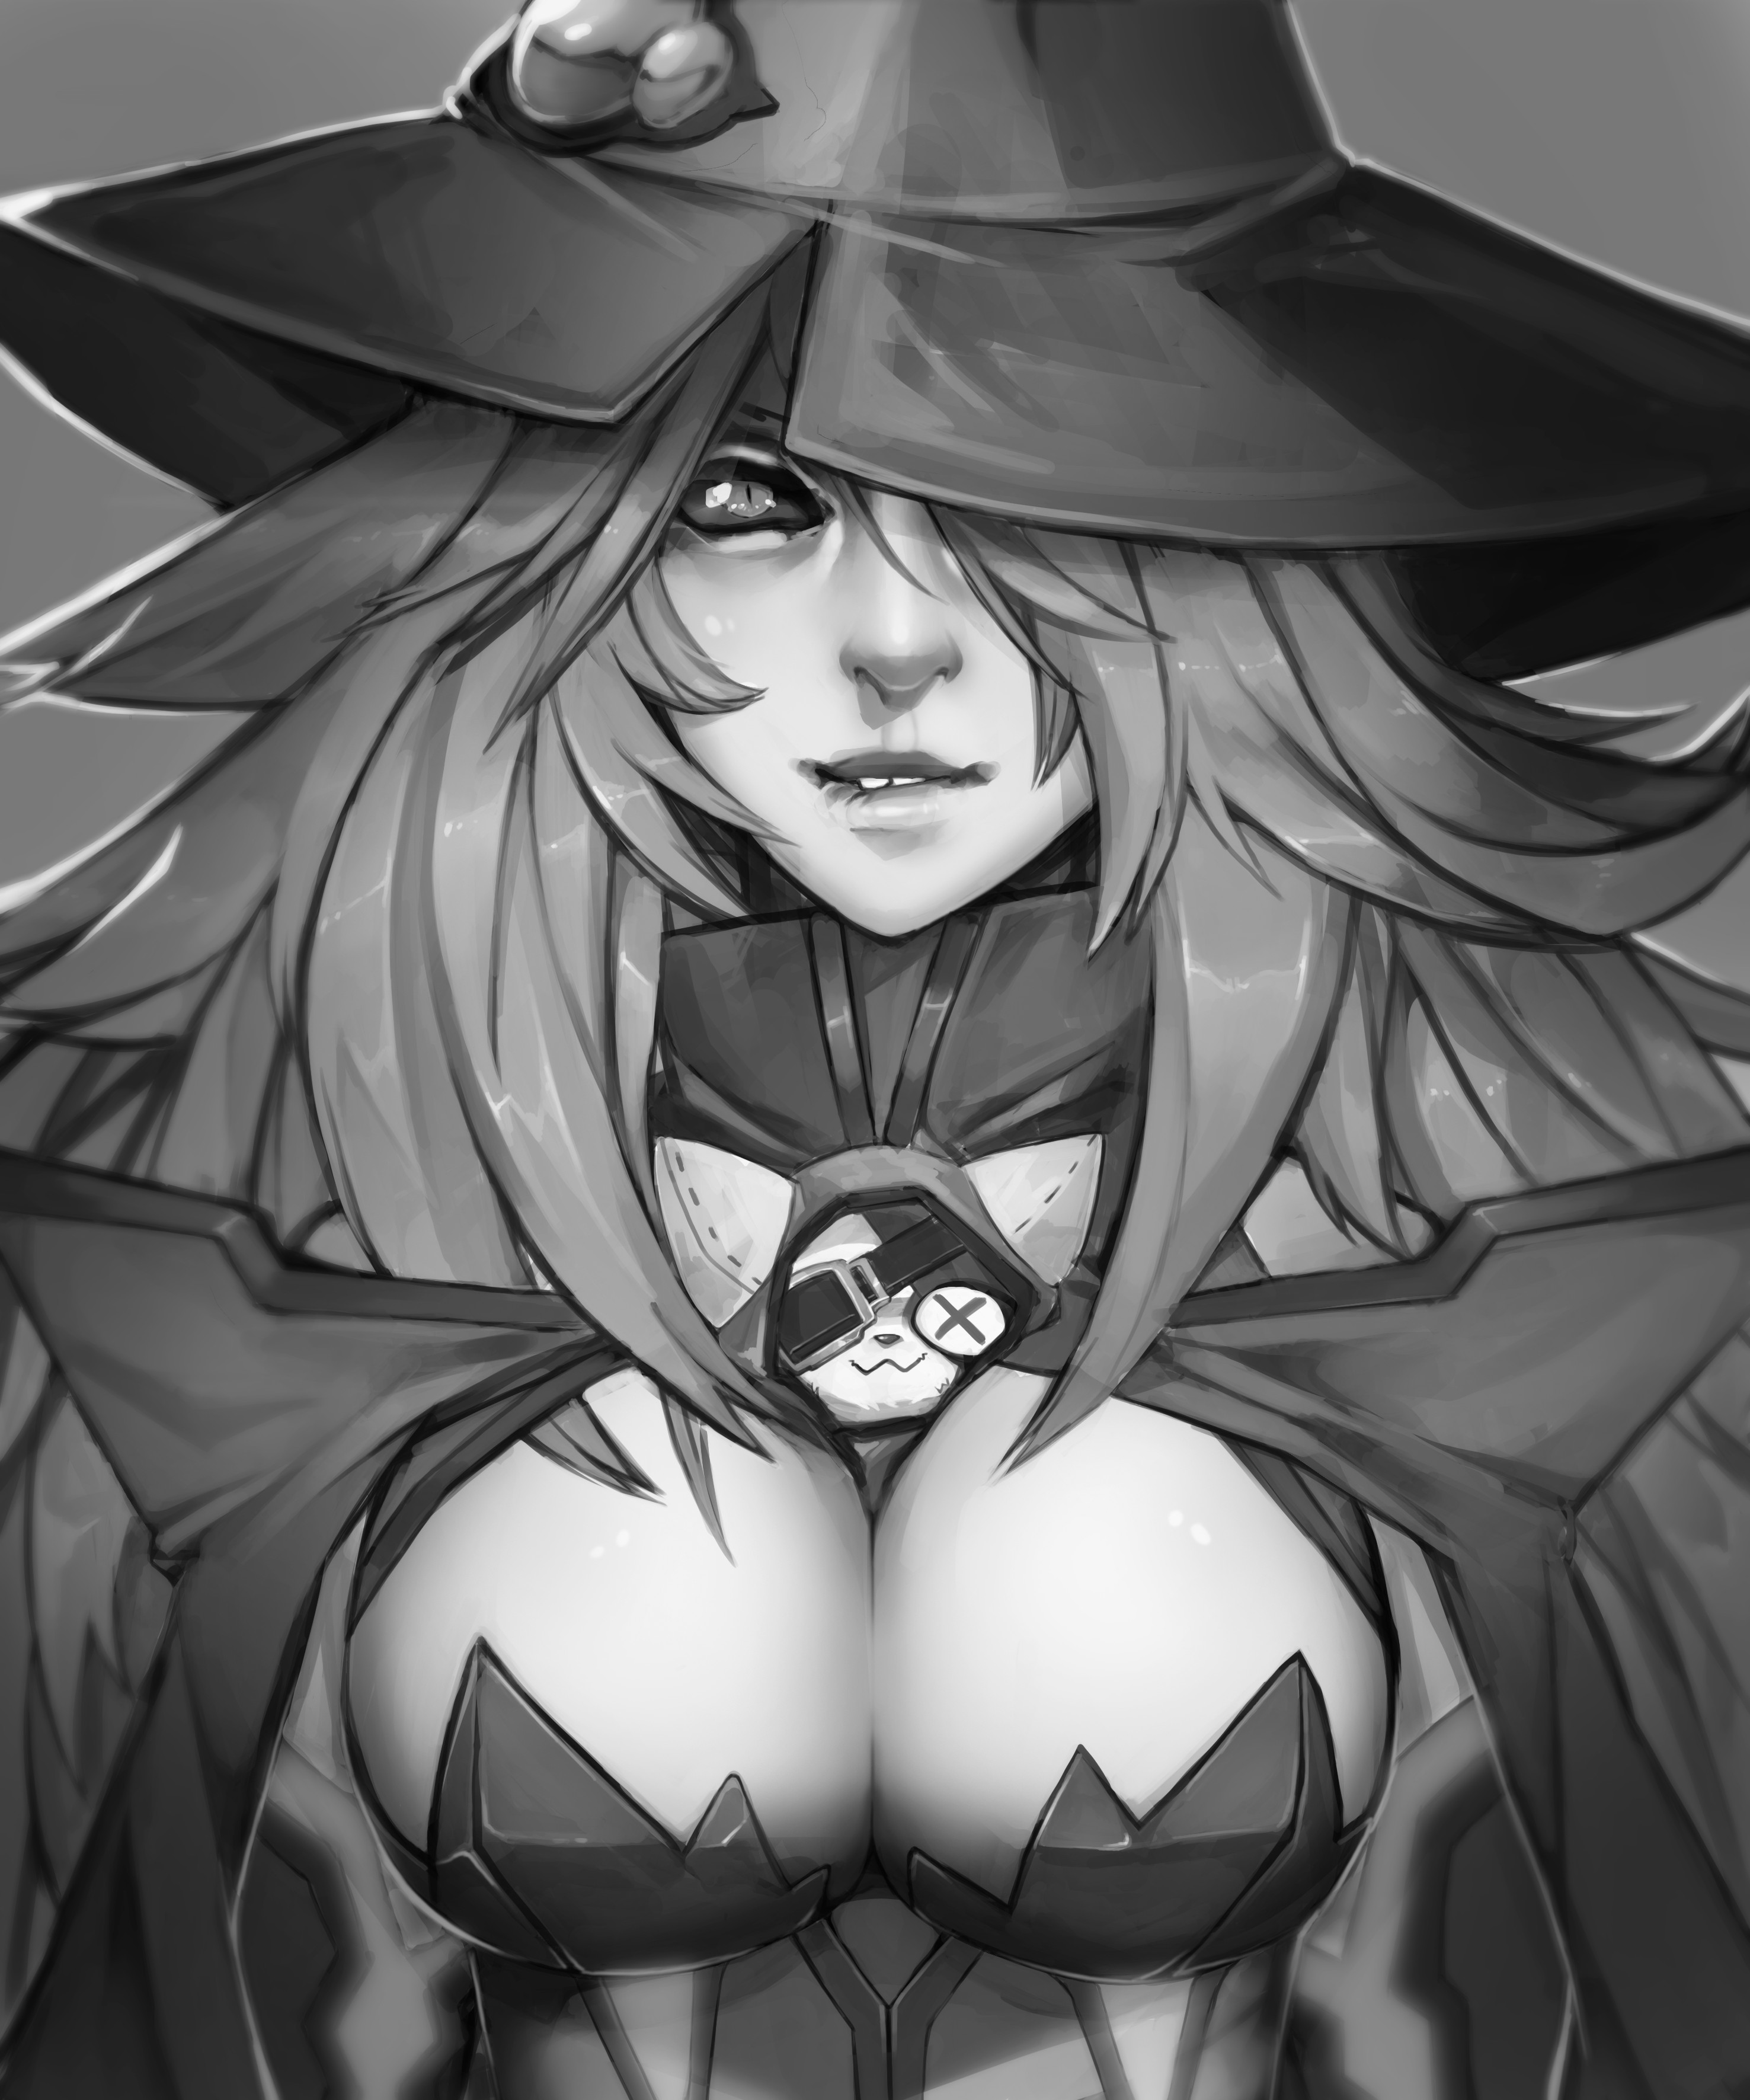 Black and White version of final